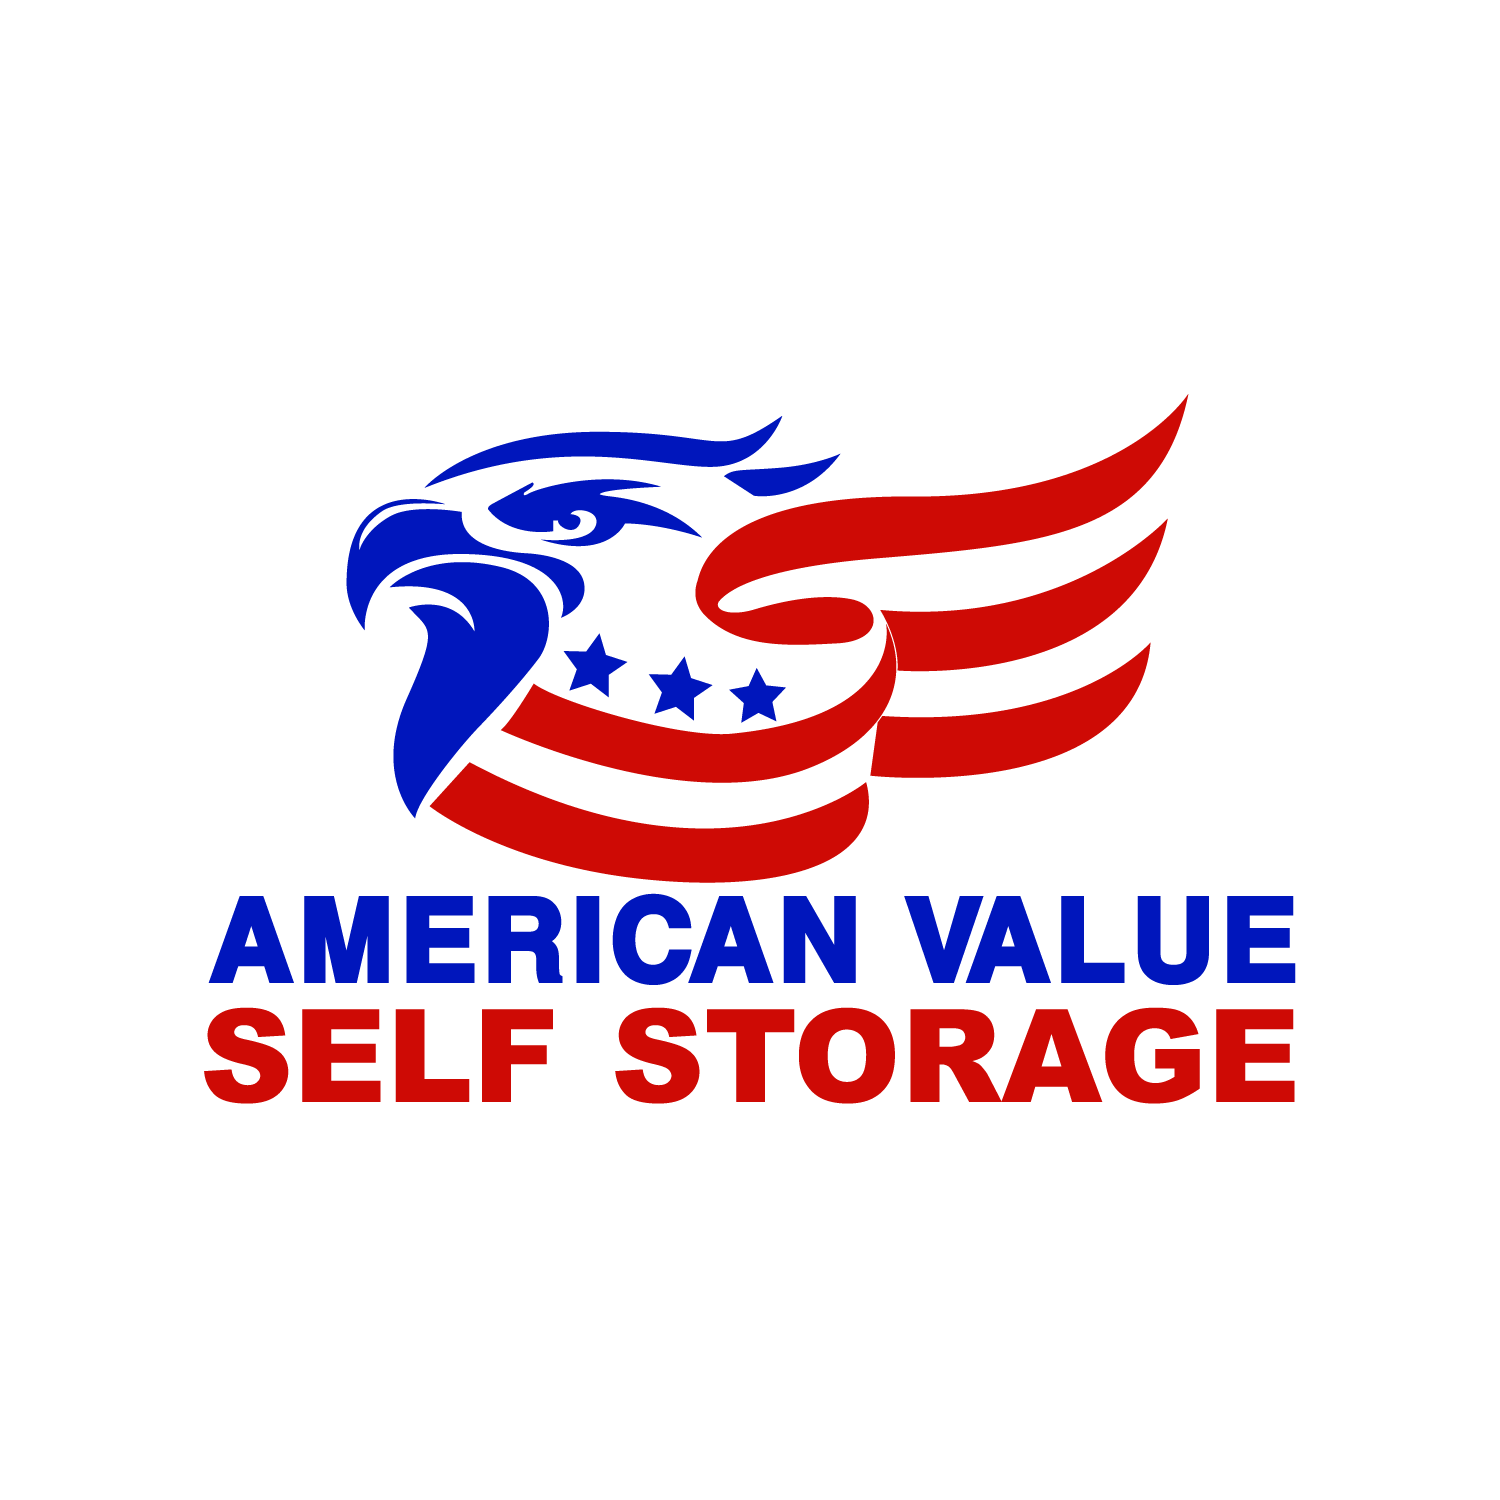 American Value Self Storage